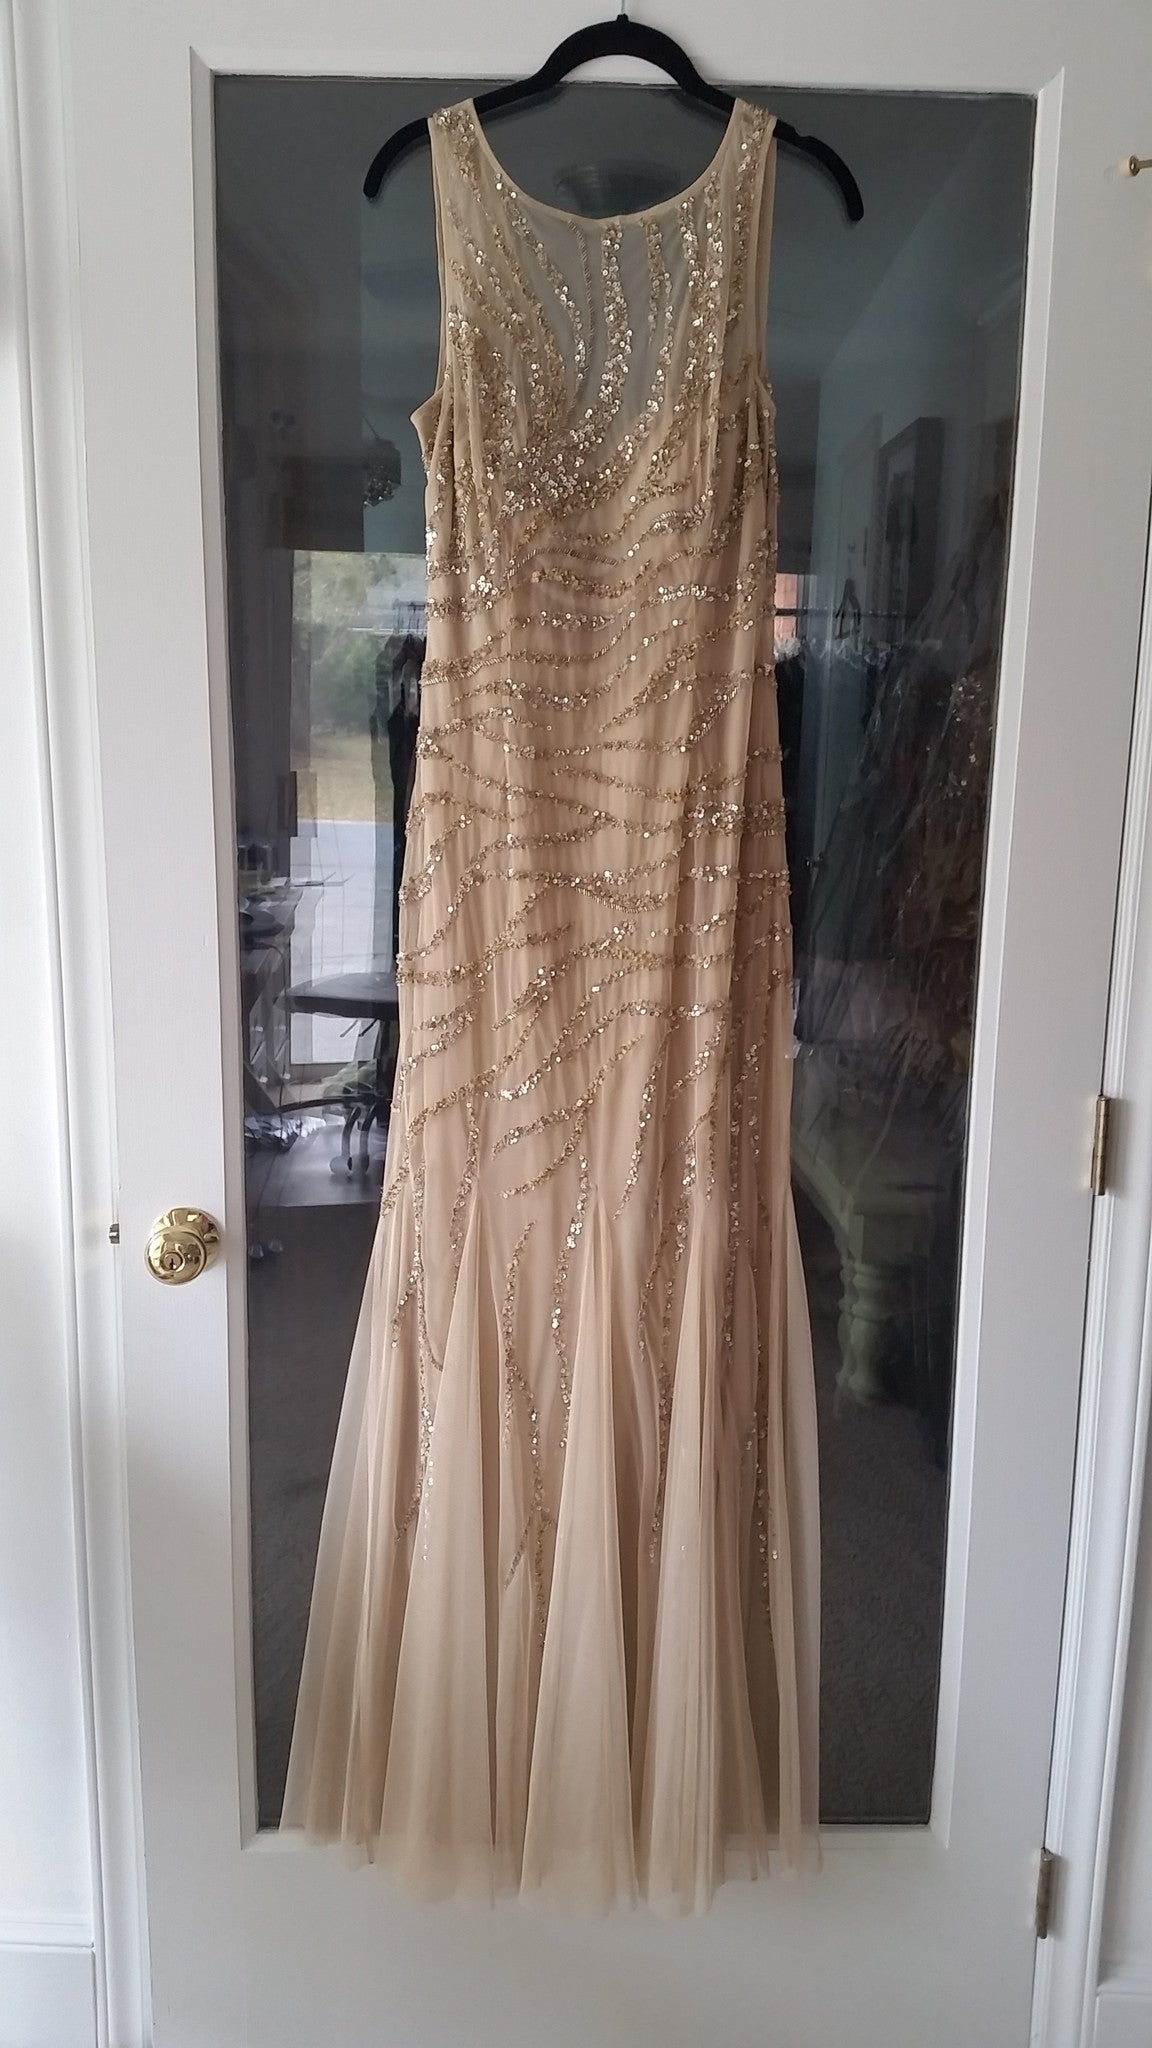 Gold Sequined Aidan Mattox Mermaid Dress, Size 8 RENT $99